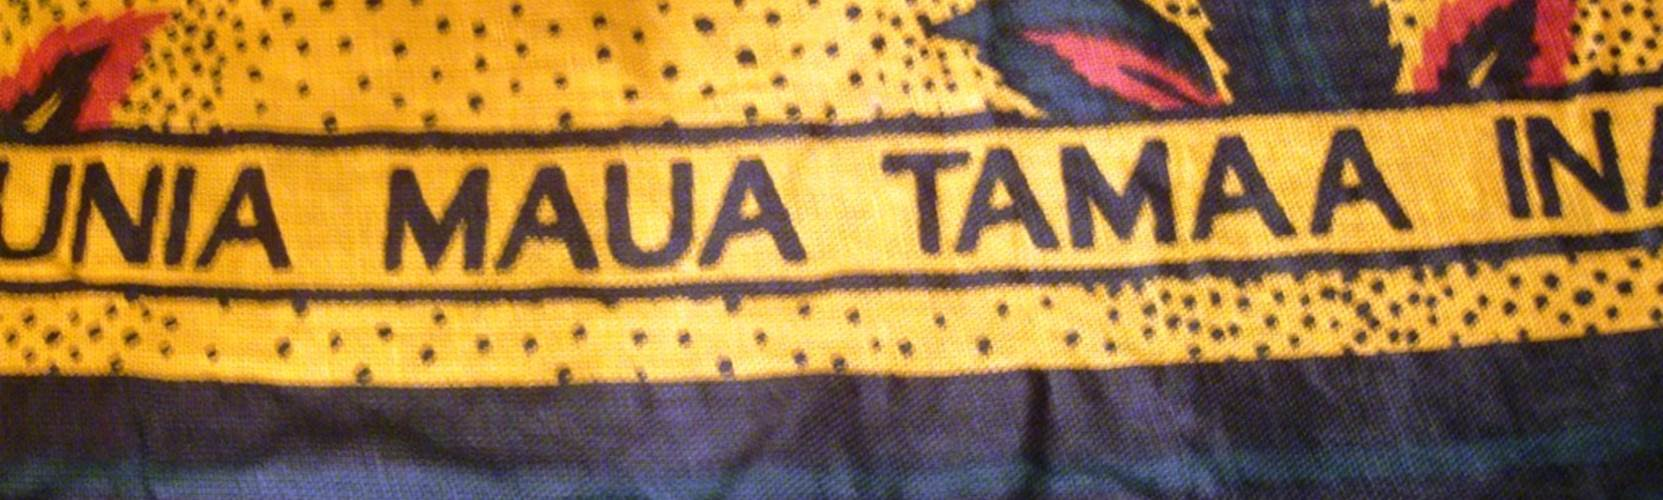 Swahili tanzania traditional fabric